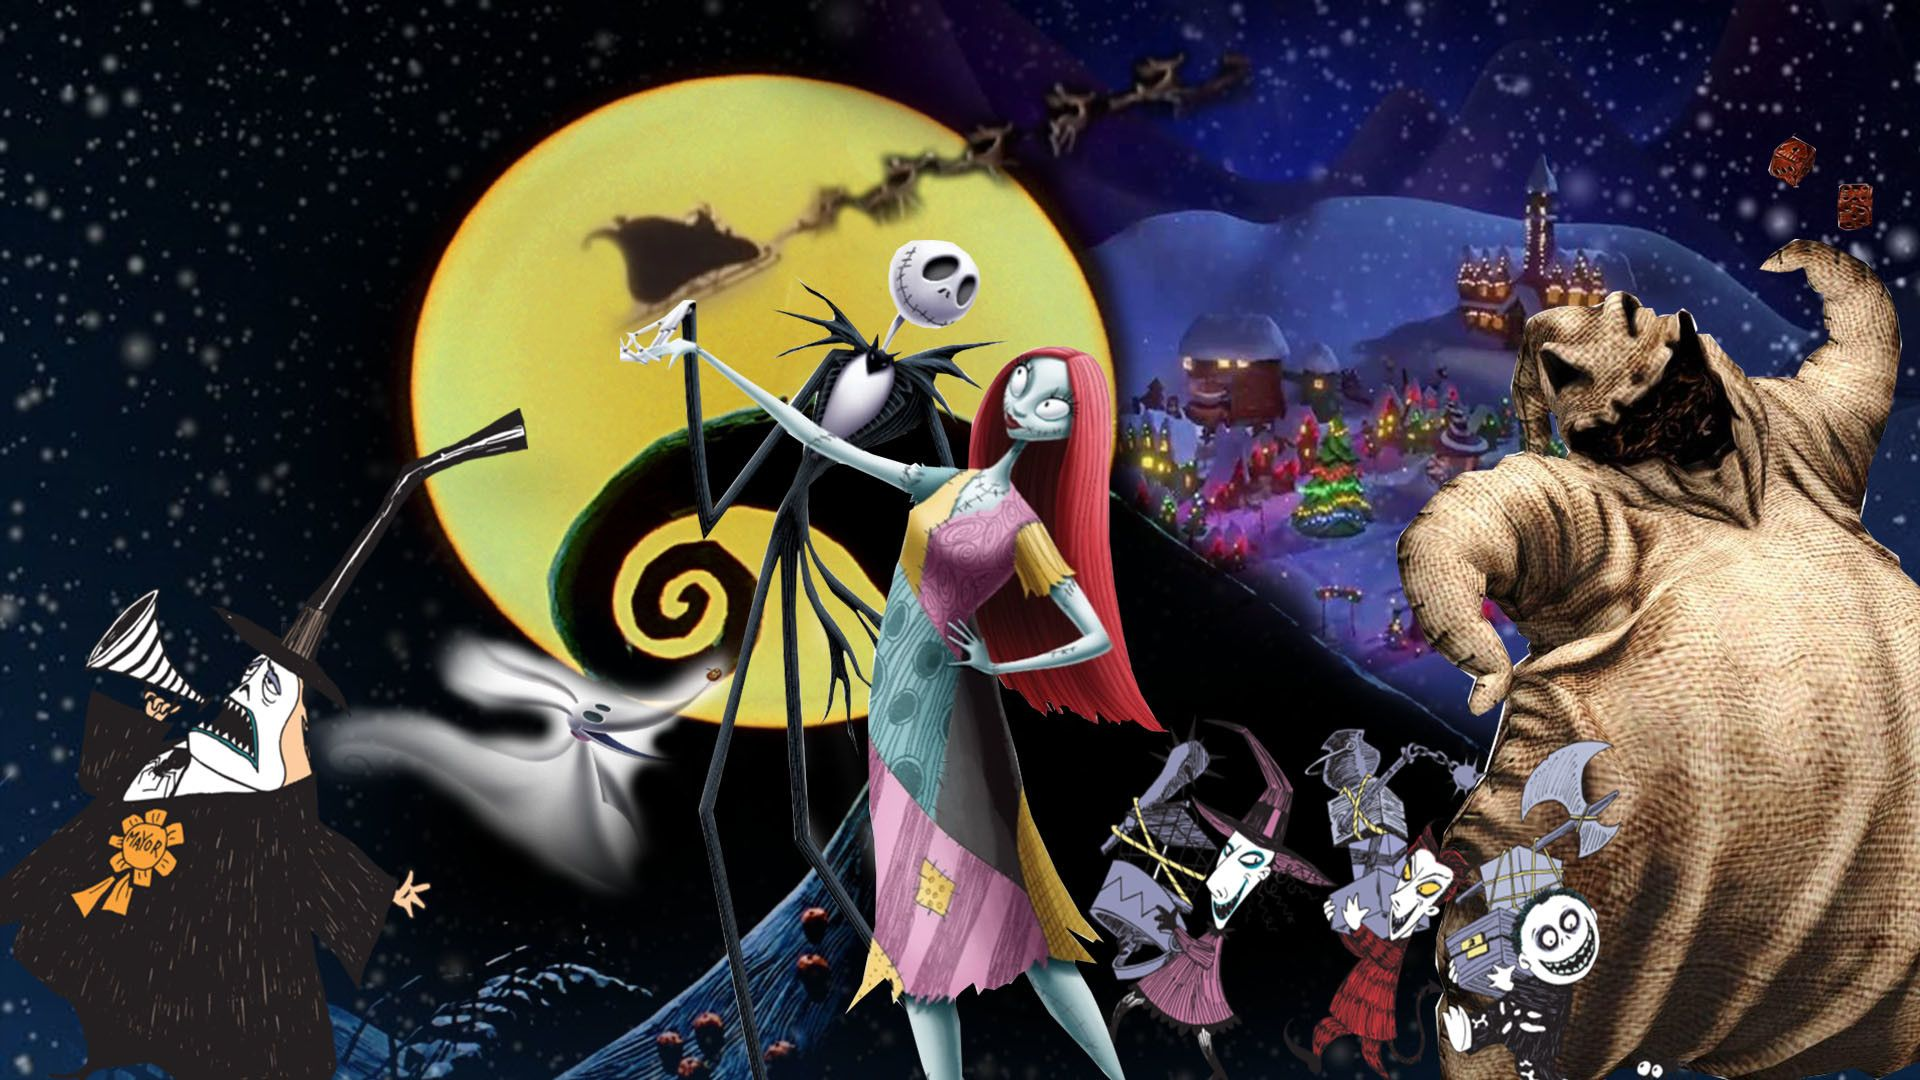 1920x1080 The Nightmare Before Christmas Wallpaper By The Nightmare Before Christmas Wallpaper Nightmare Before Christmas Tattoo Nightmare Before Christmas